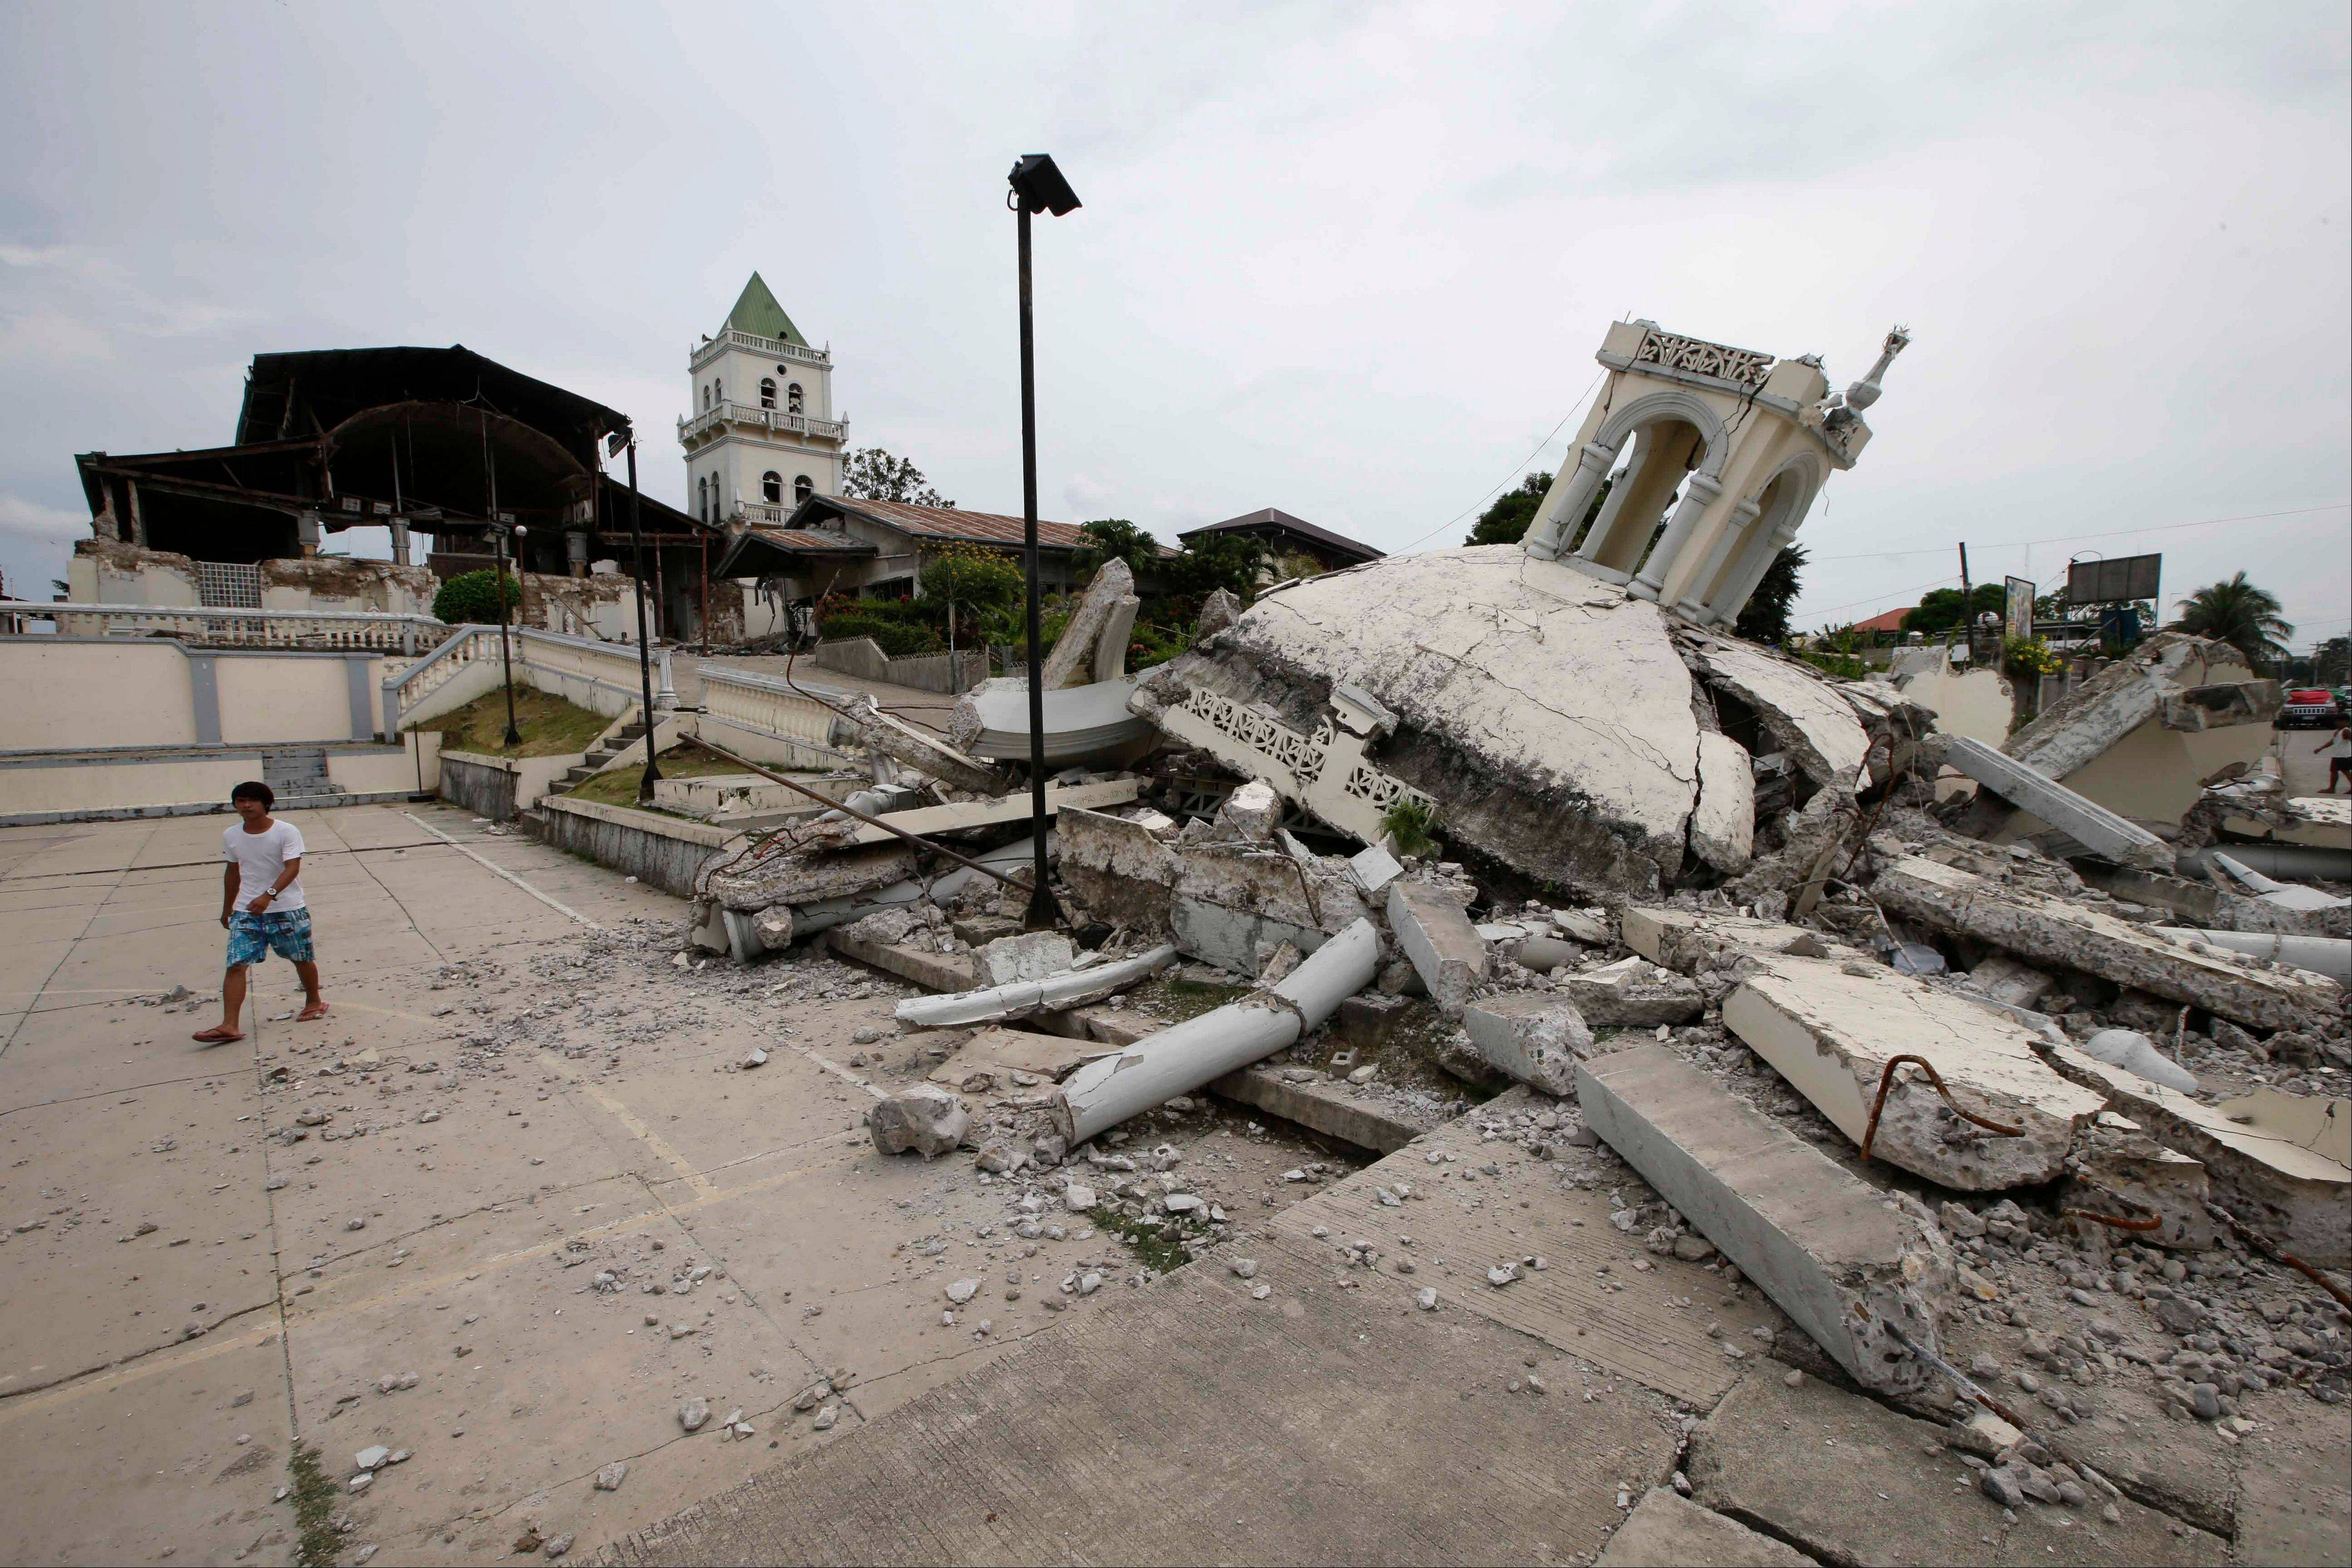 A boy walks away from the rubble of San Isidro de Labrador church in central Philippines. A 7.2-magnitude quake hit Bohol and Cebu provinces Tuesday damaging churches, buildings and homes and causing multiple deaths across the central region.